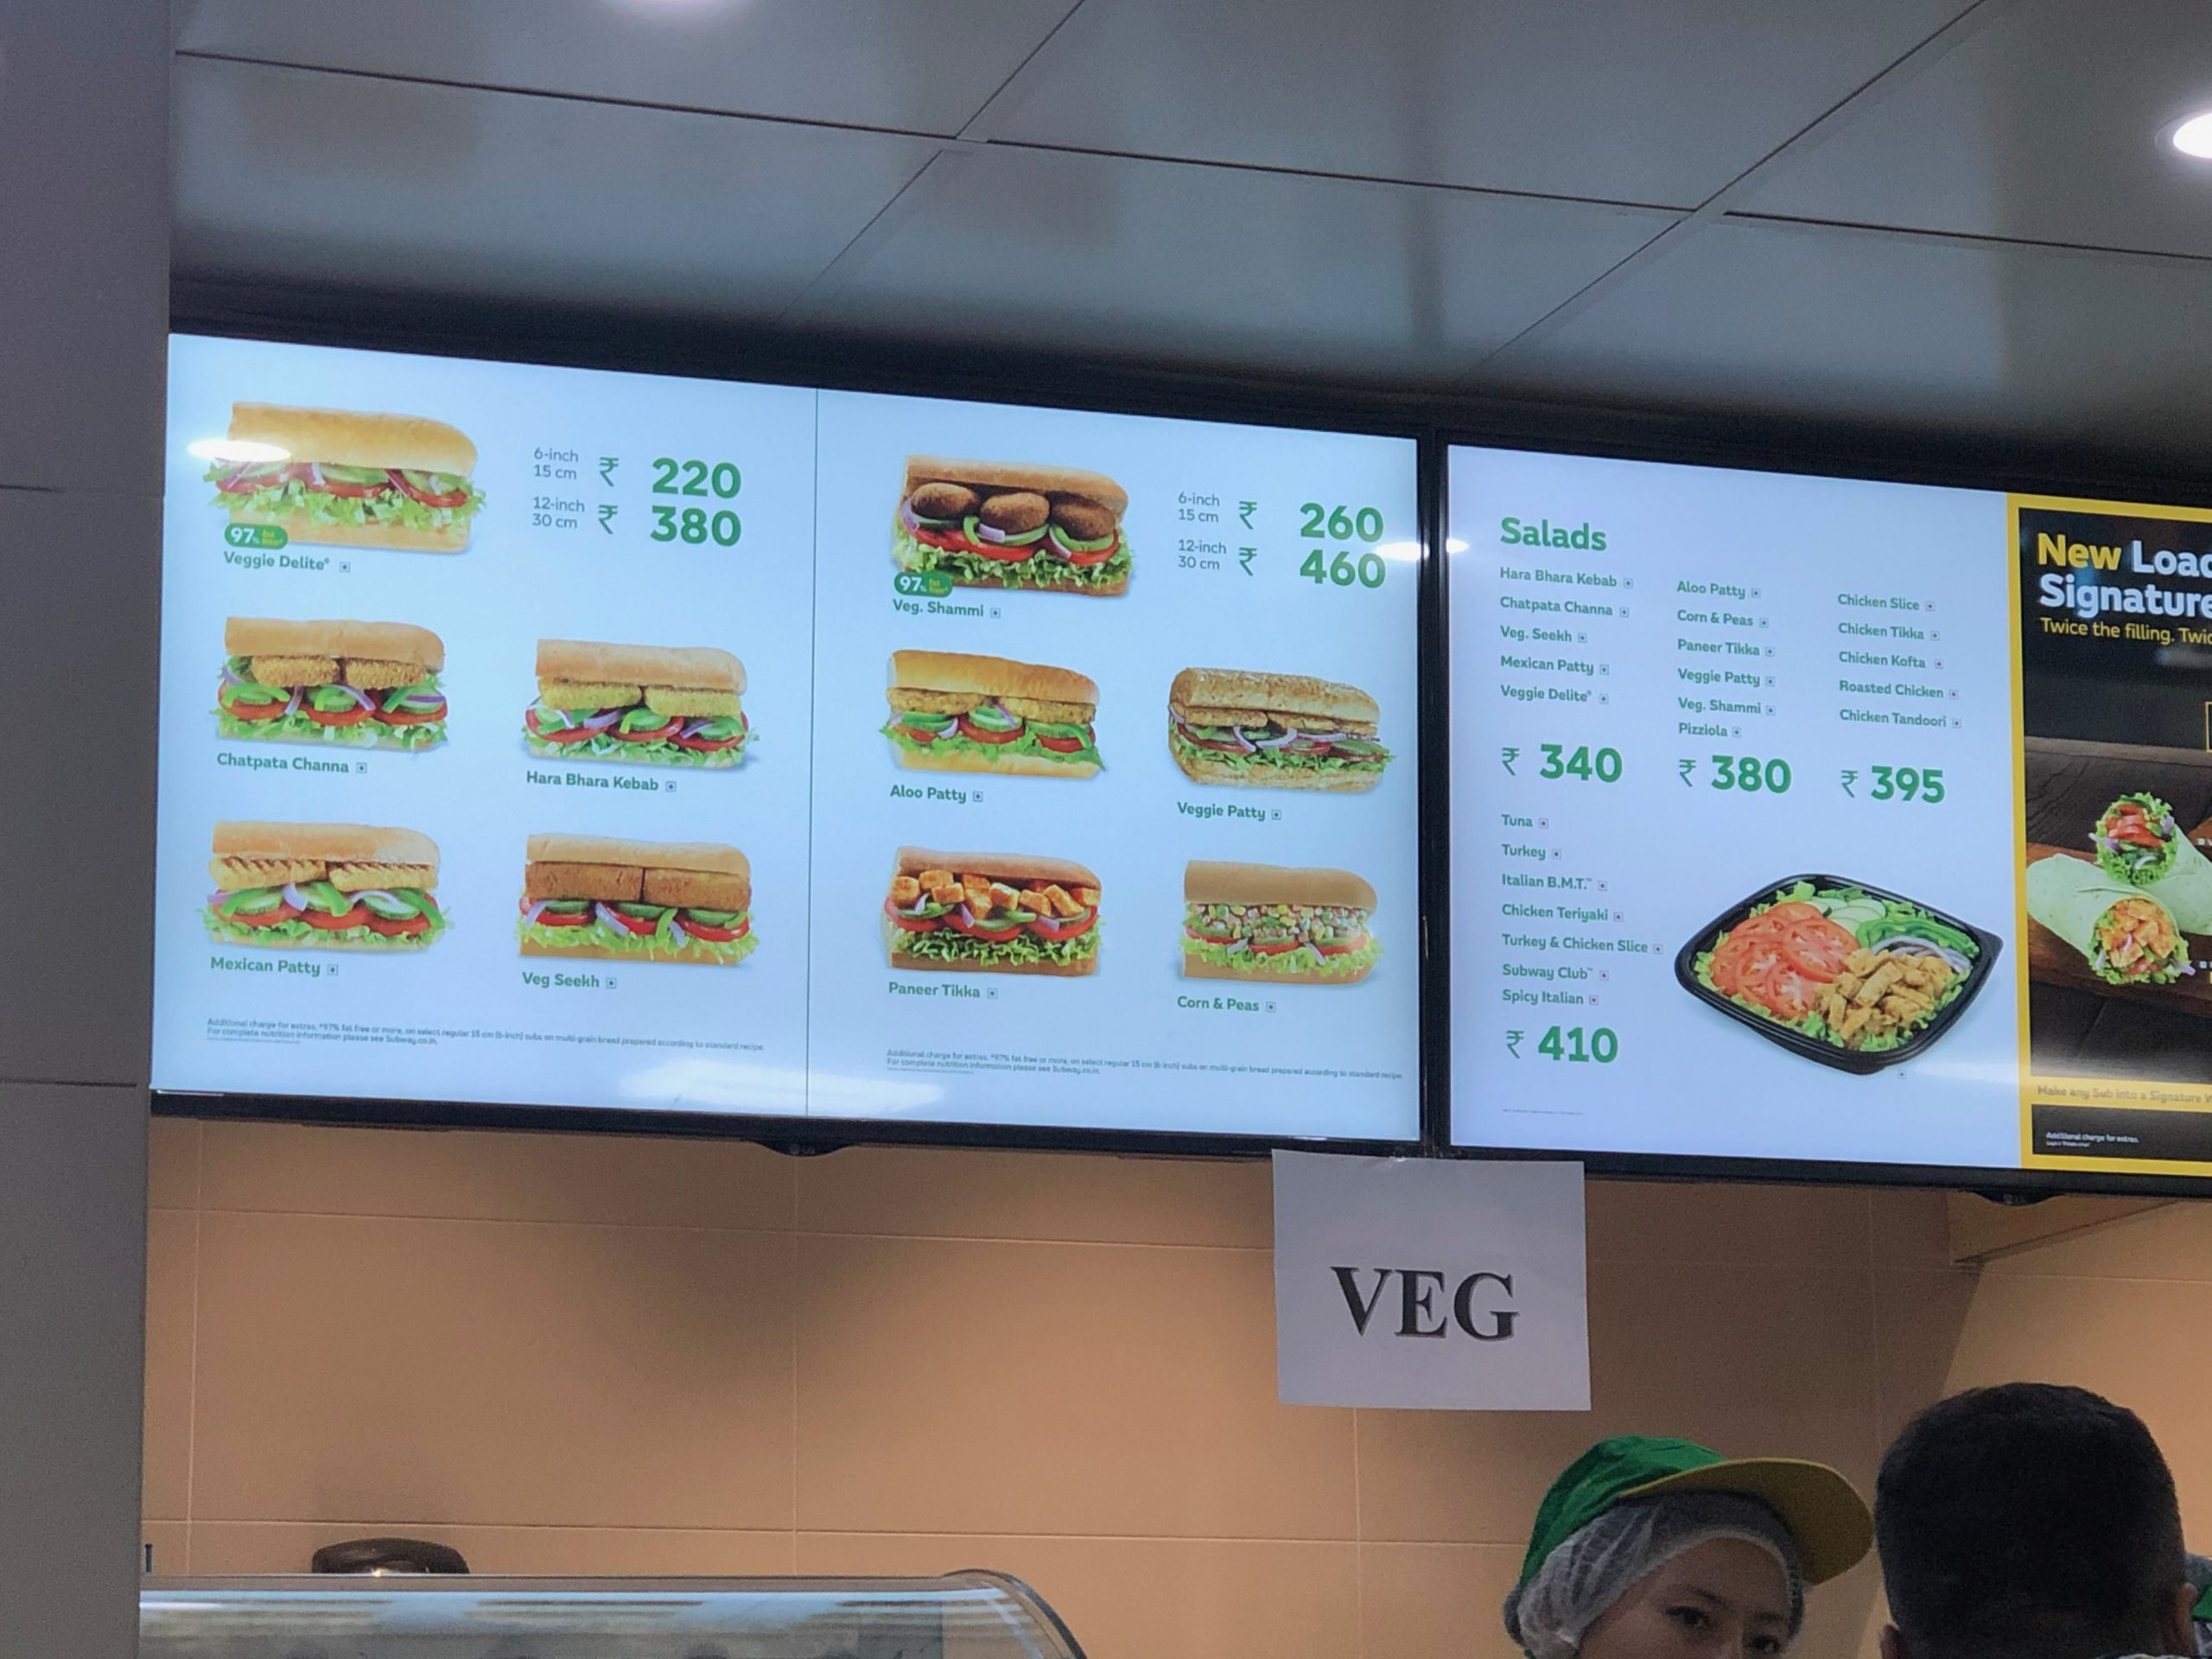 See how vegetarian friendly Subway is at the Goa airport?